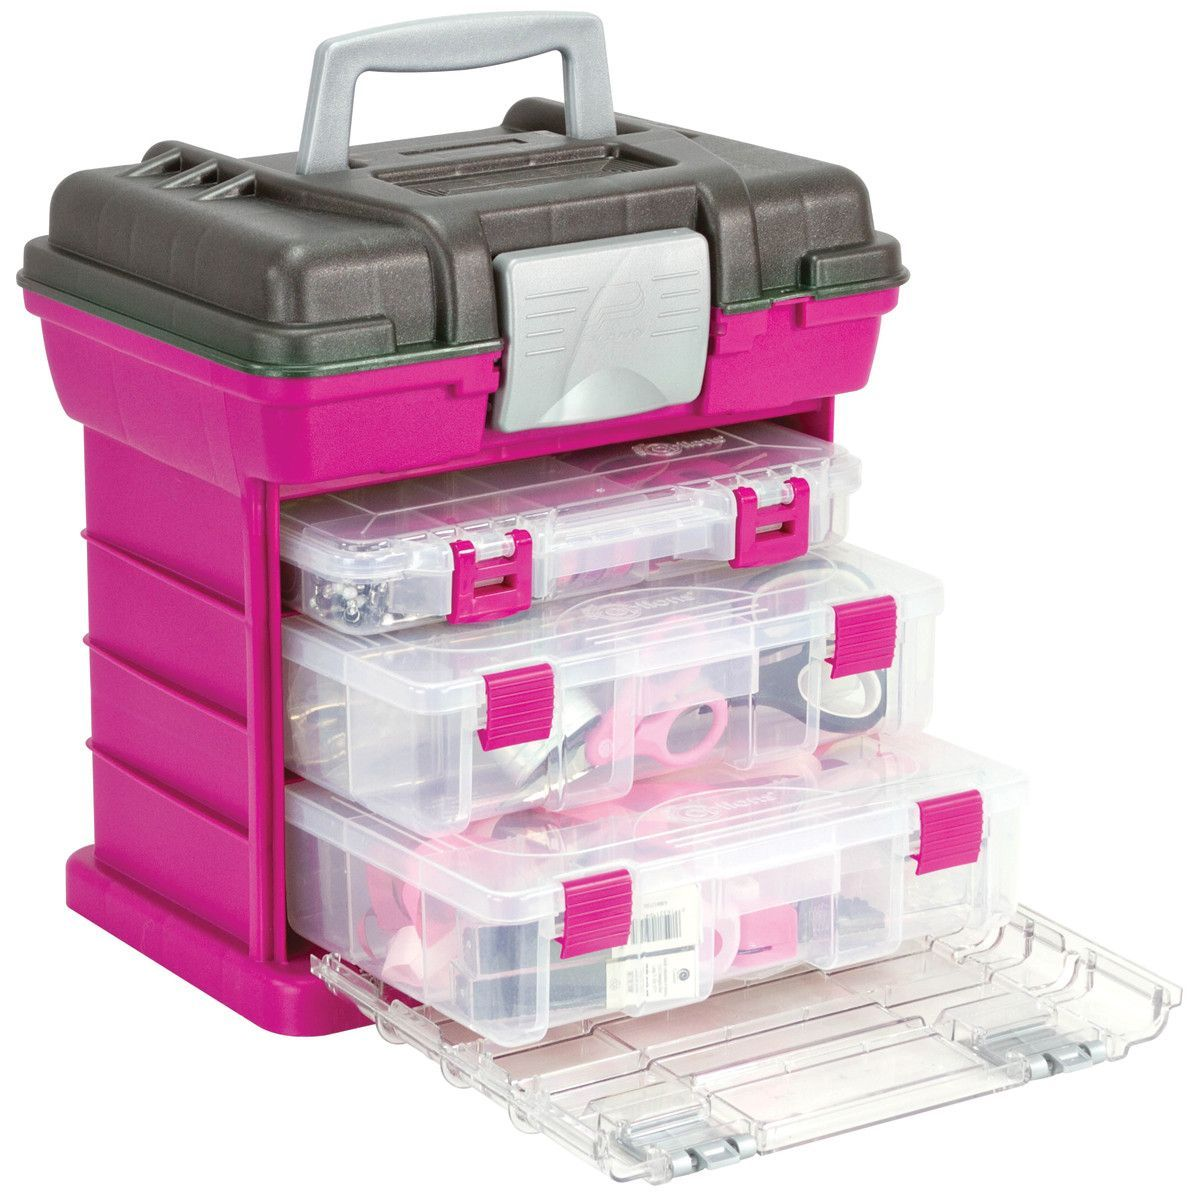 Attractive Creative Options Grabu0027n Go 3 By Rack System Magenta, Sparkle Gray.